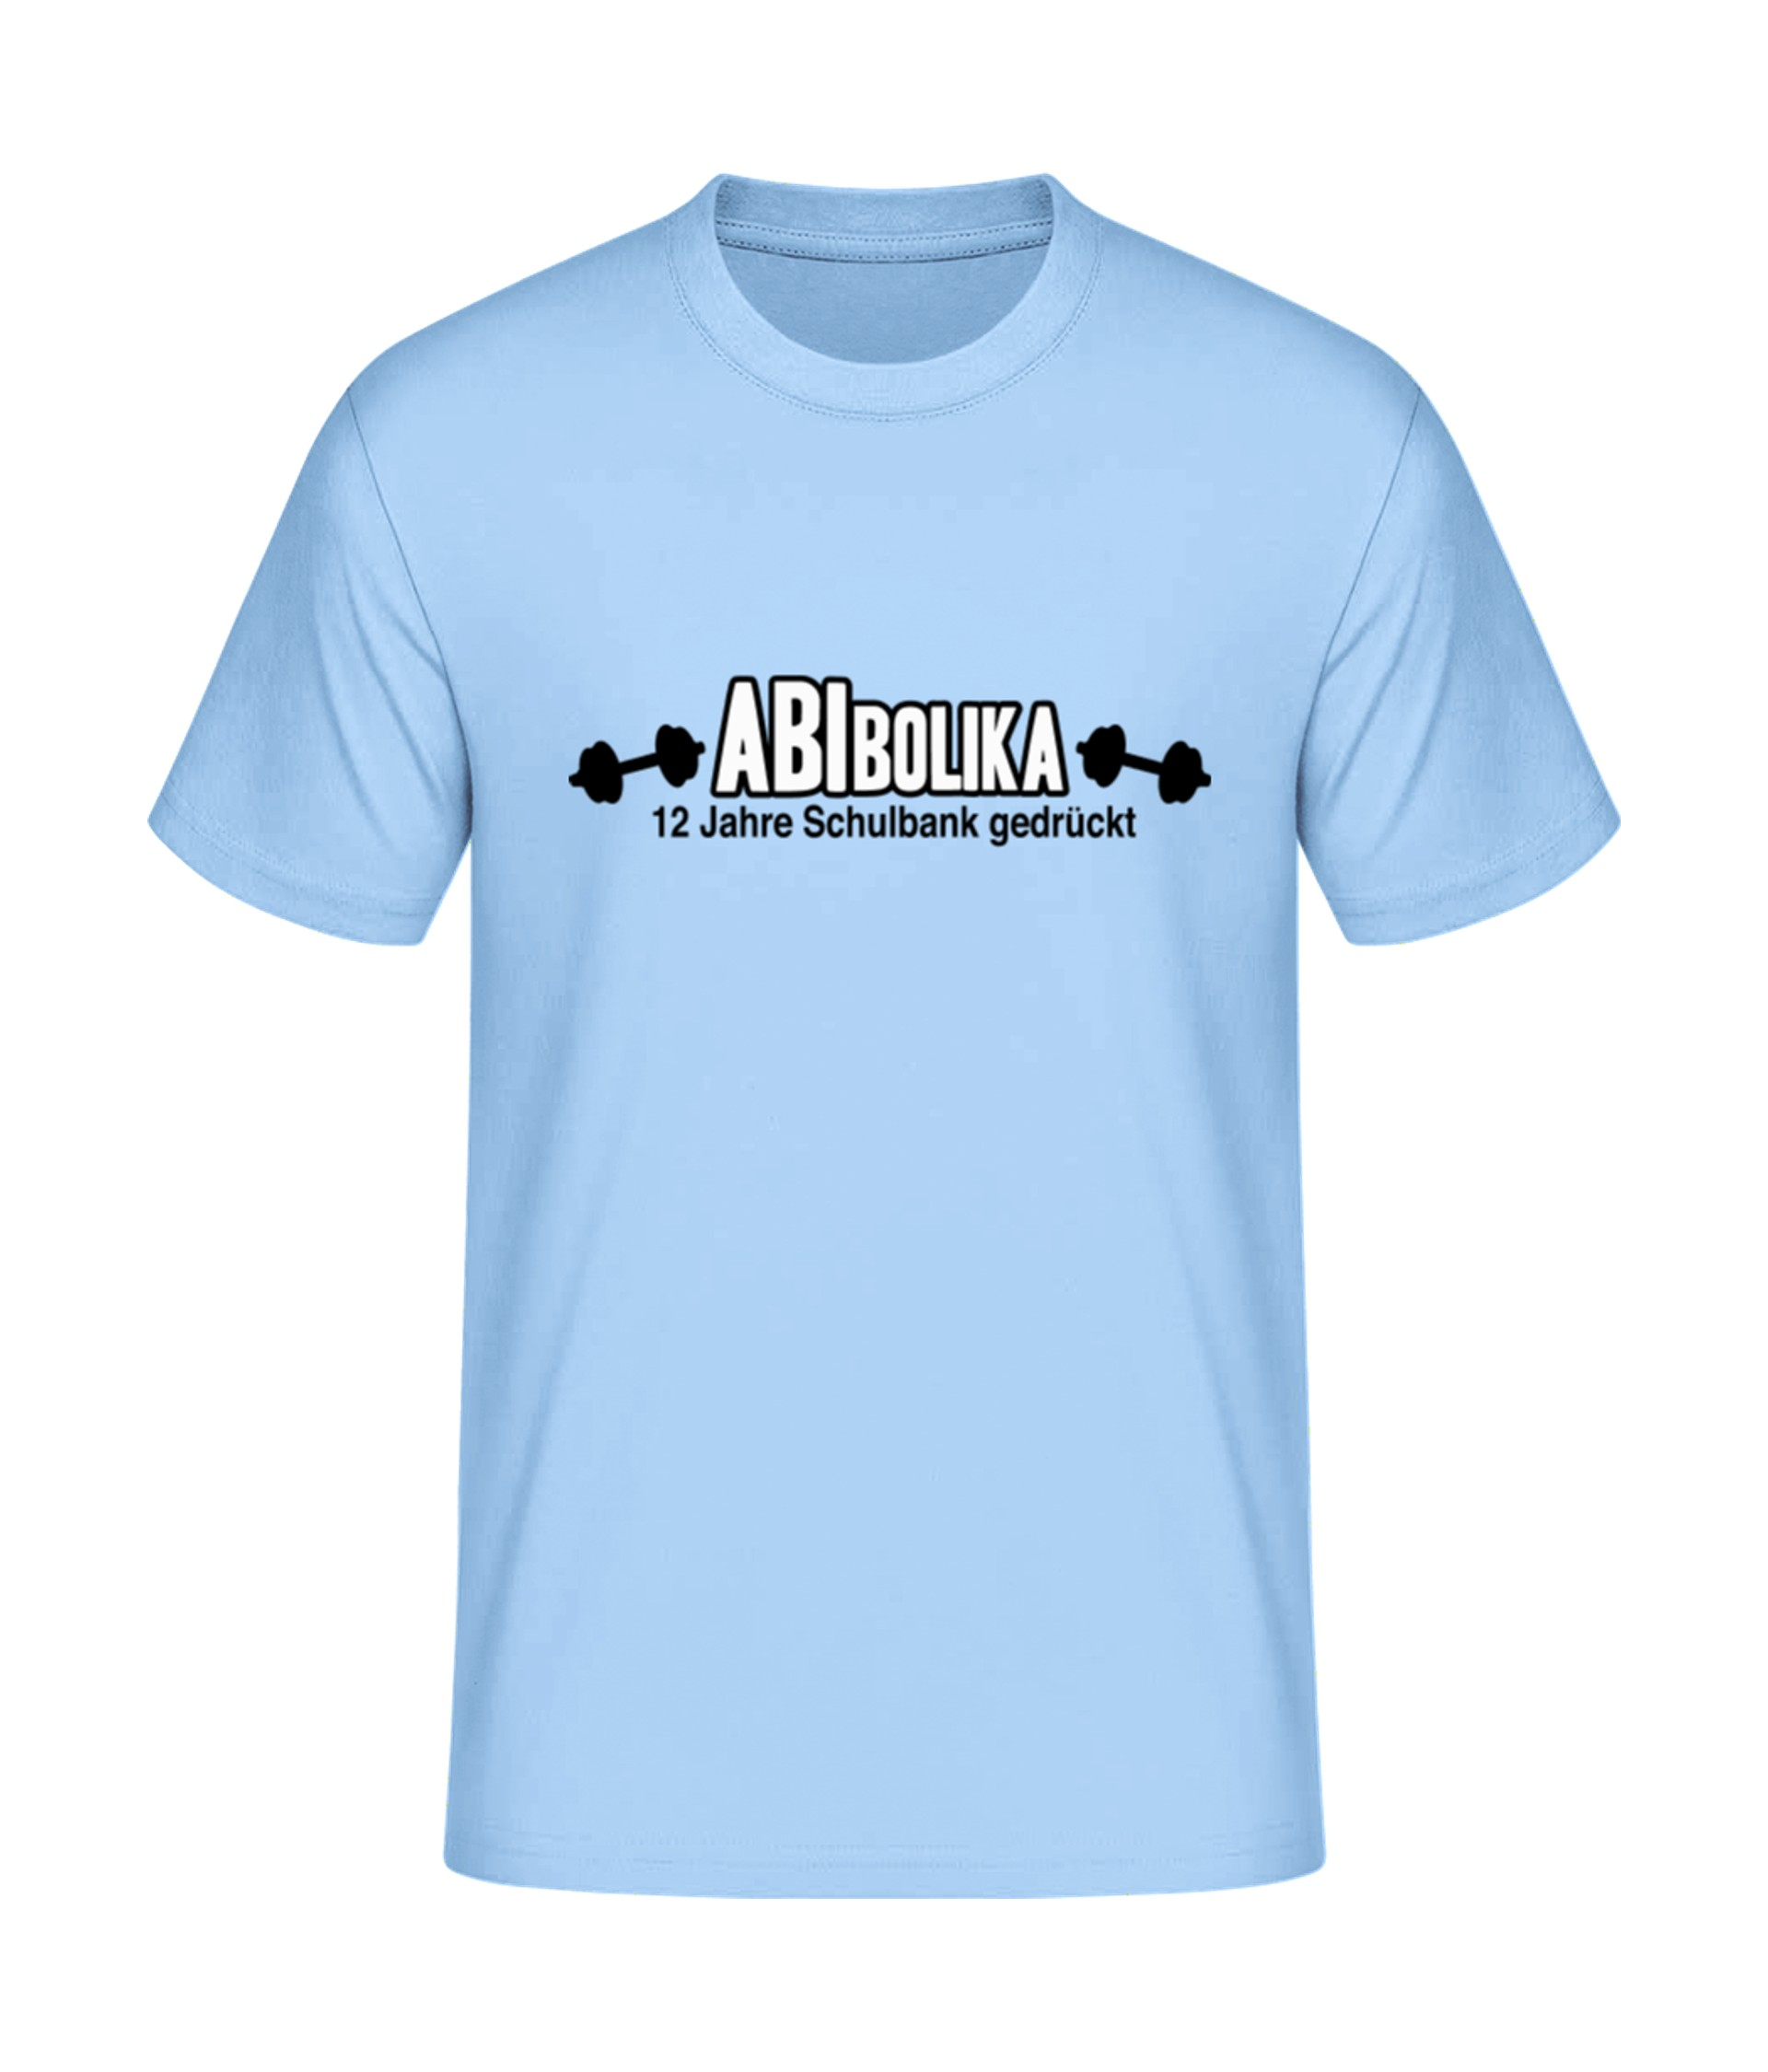 low priced 8bf8d 7b0bf Abschluss T-Shirts bedrucken